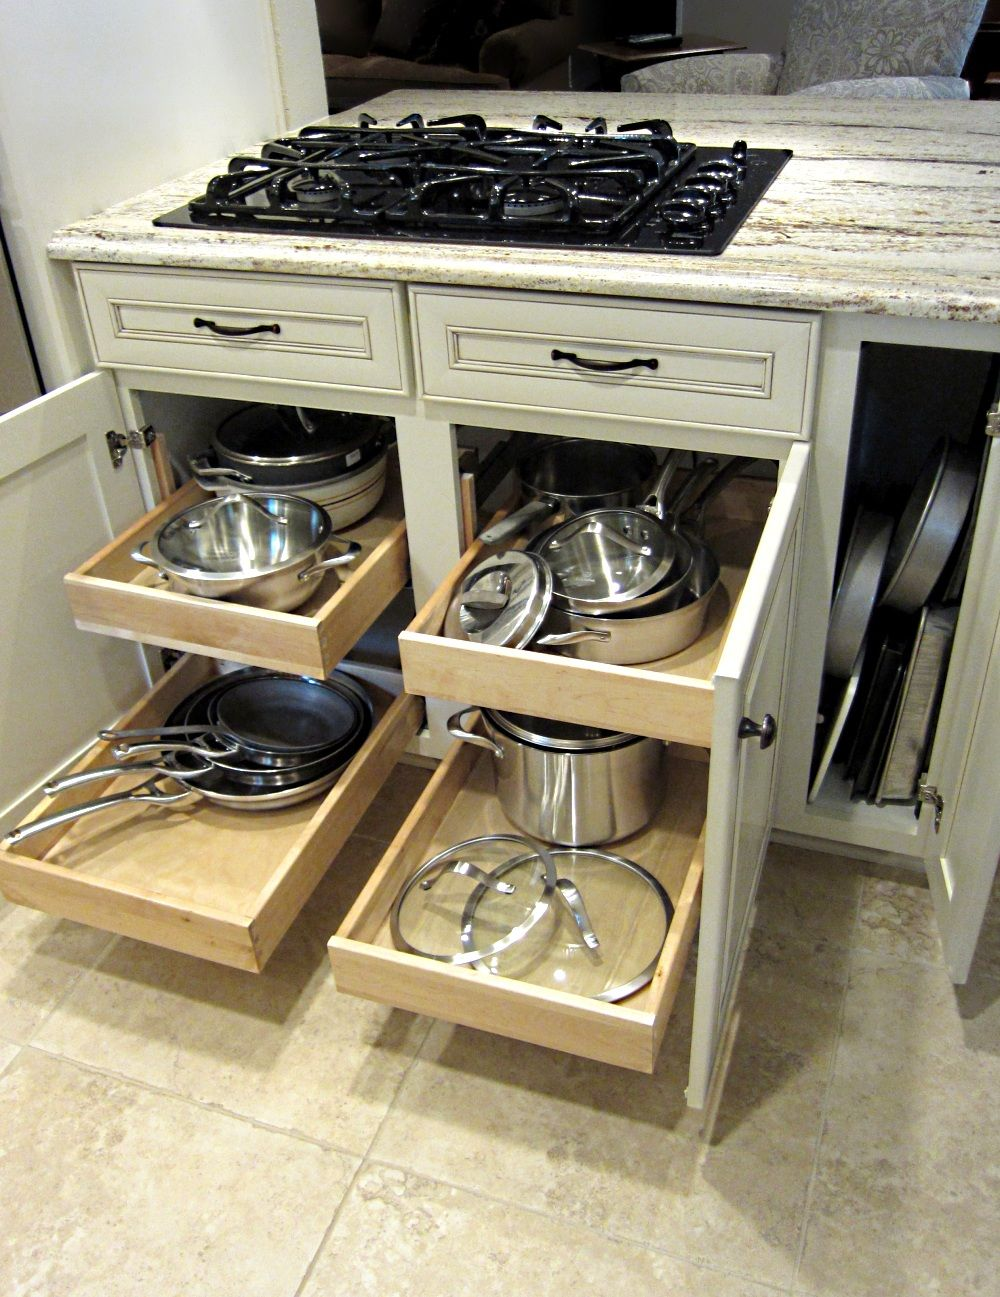 Pull Out Drawers Under Stove For Pots And Pans Kitchen Renovation Design Kitchen Drawers Kitchen Drawer Organization